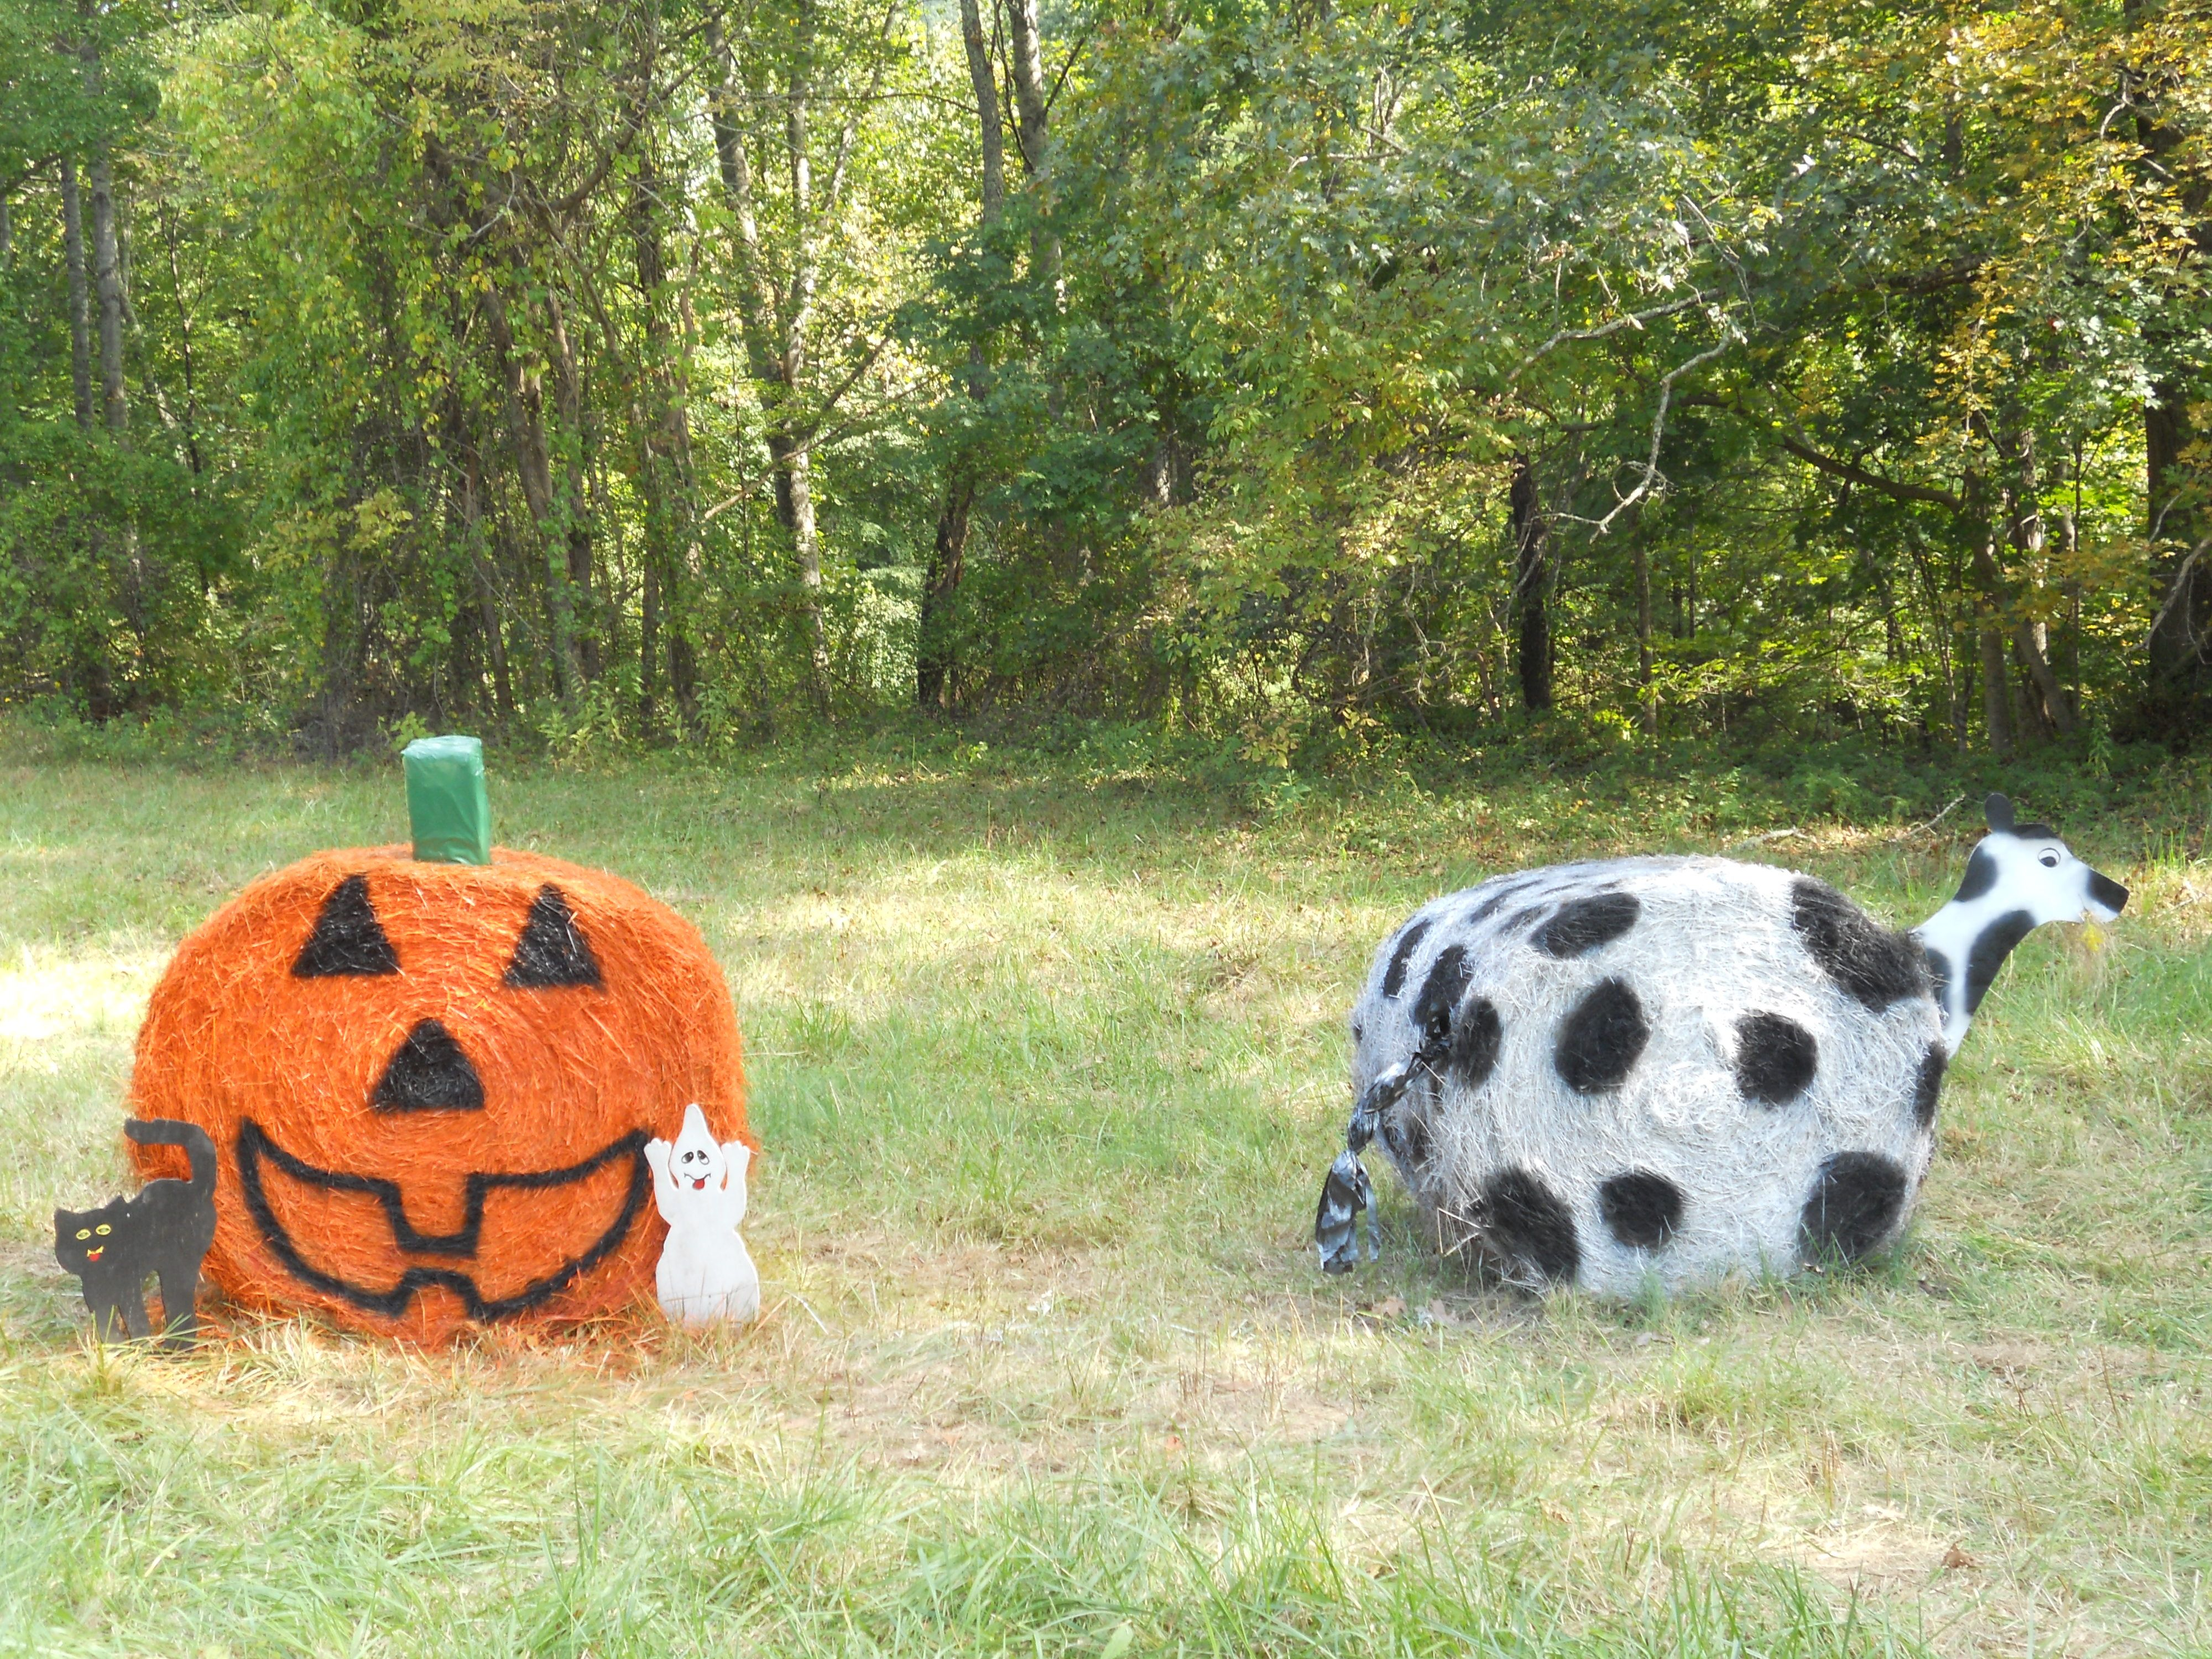 Hay Decoration Hay Bale Decor Pumpkin And A Cow Hay Bale Decoration